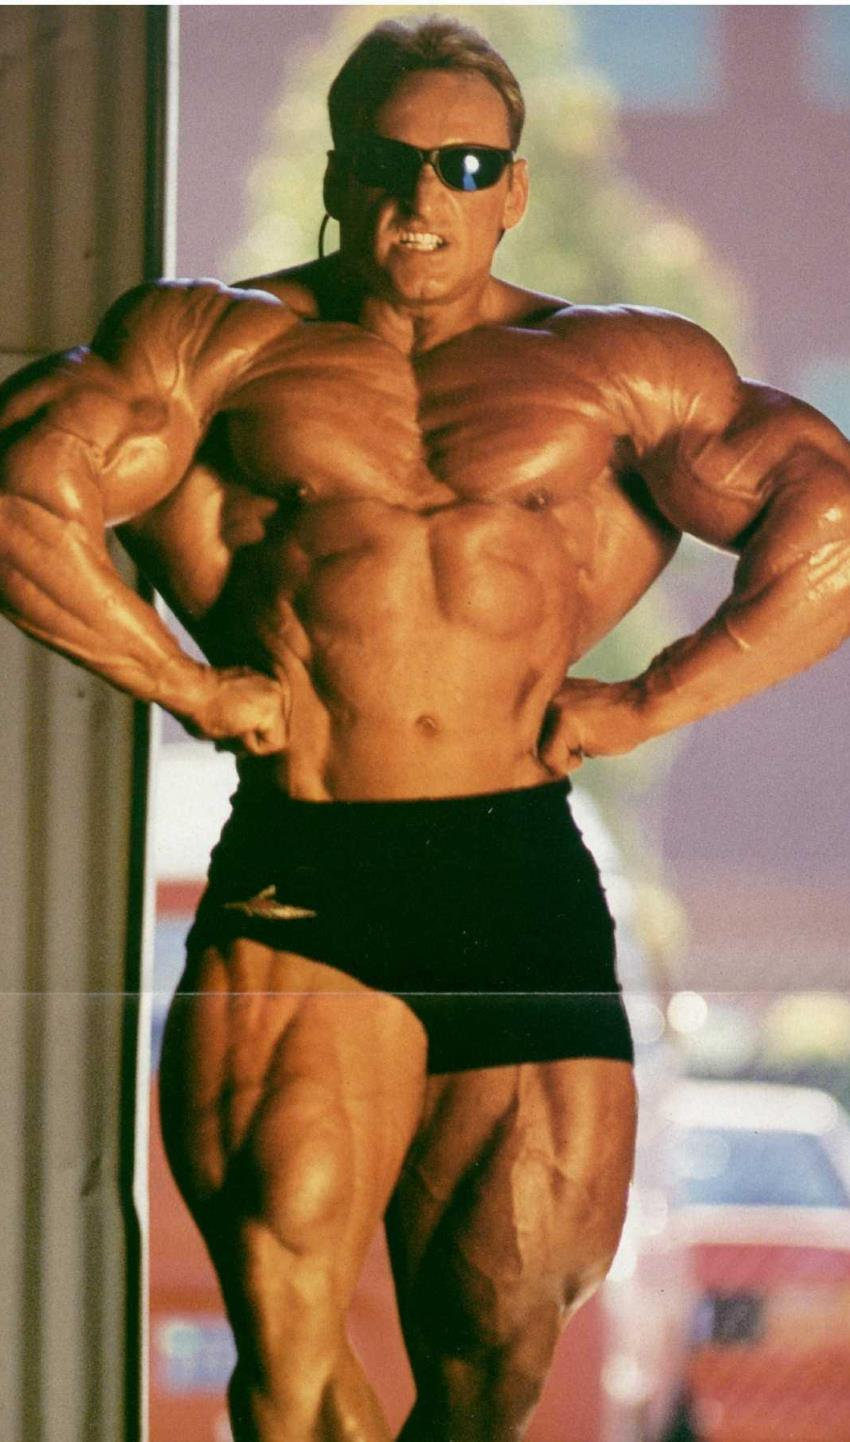 Andreas Munzer flexing his lats for the camera